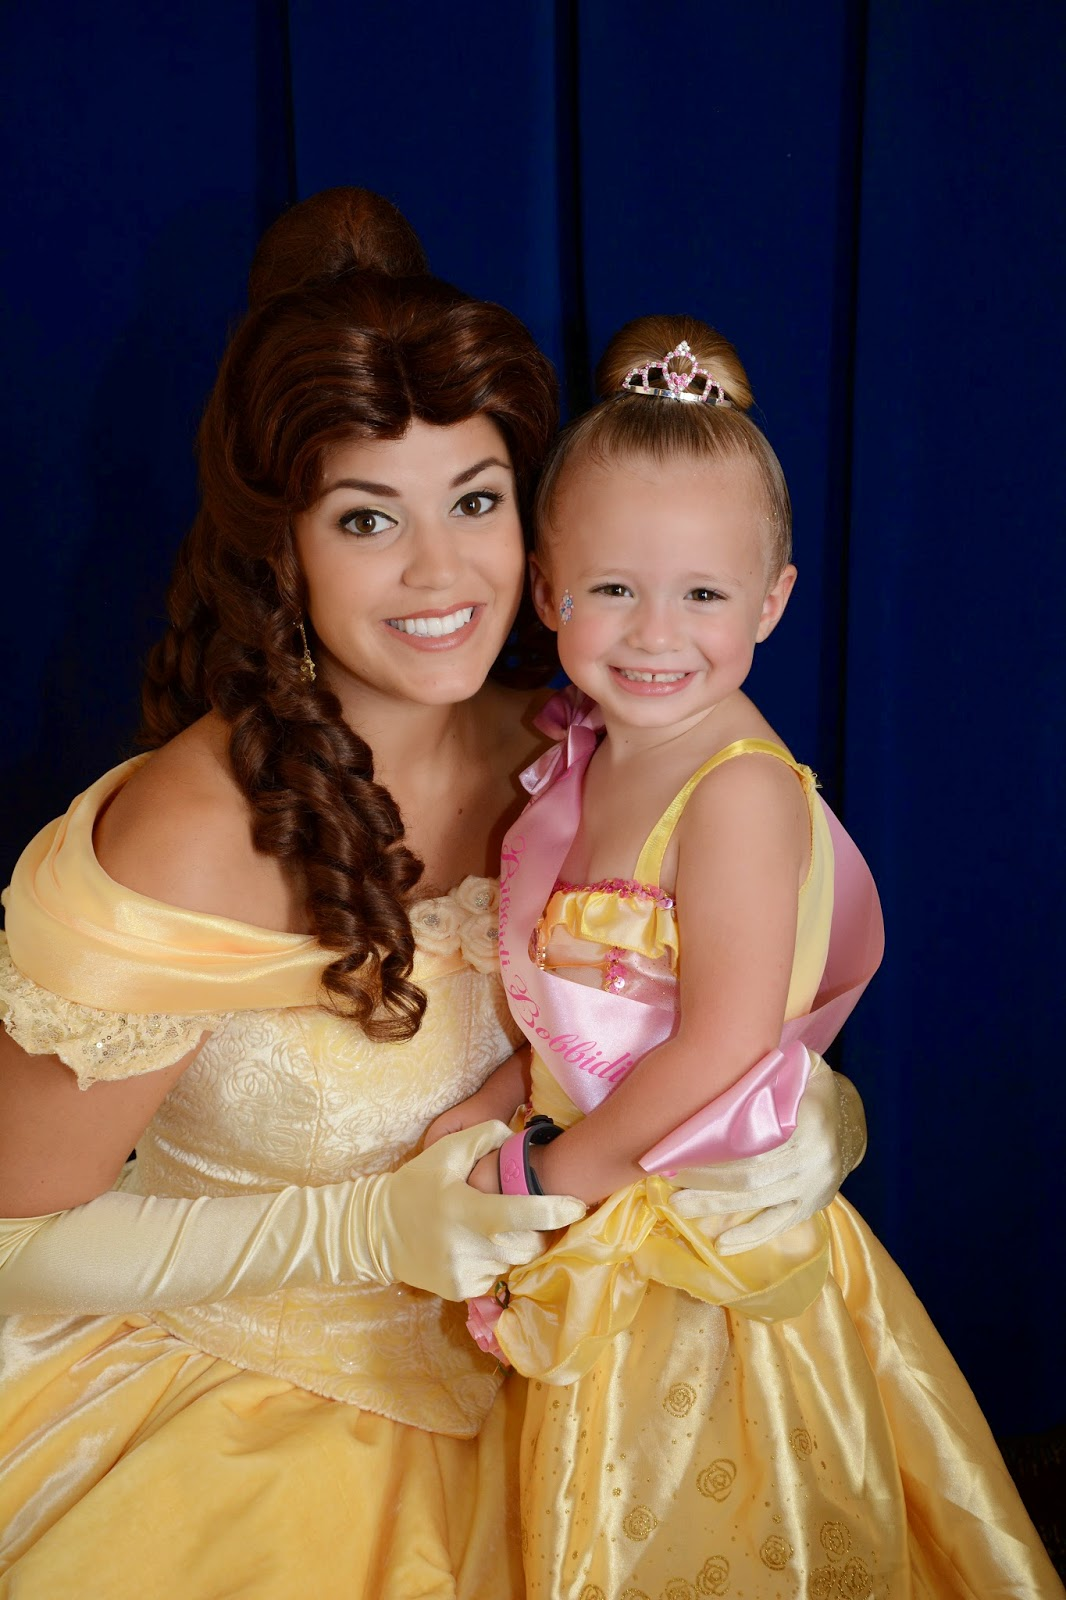 The Little Things Disney Princess Storybook Dining At